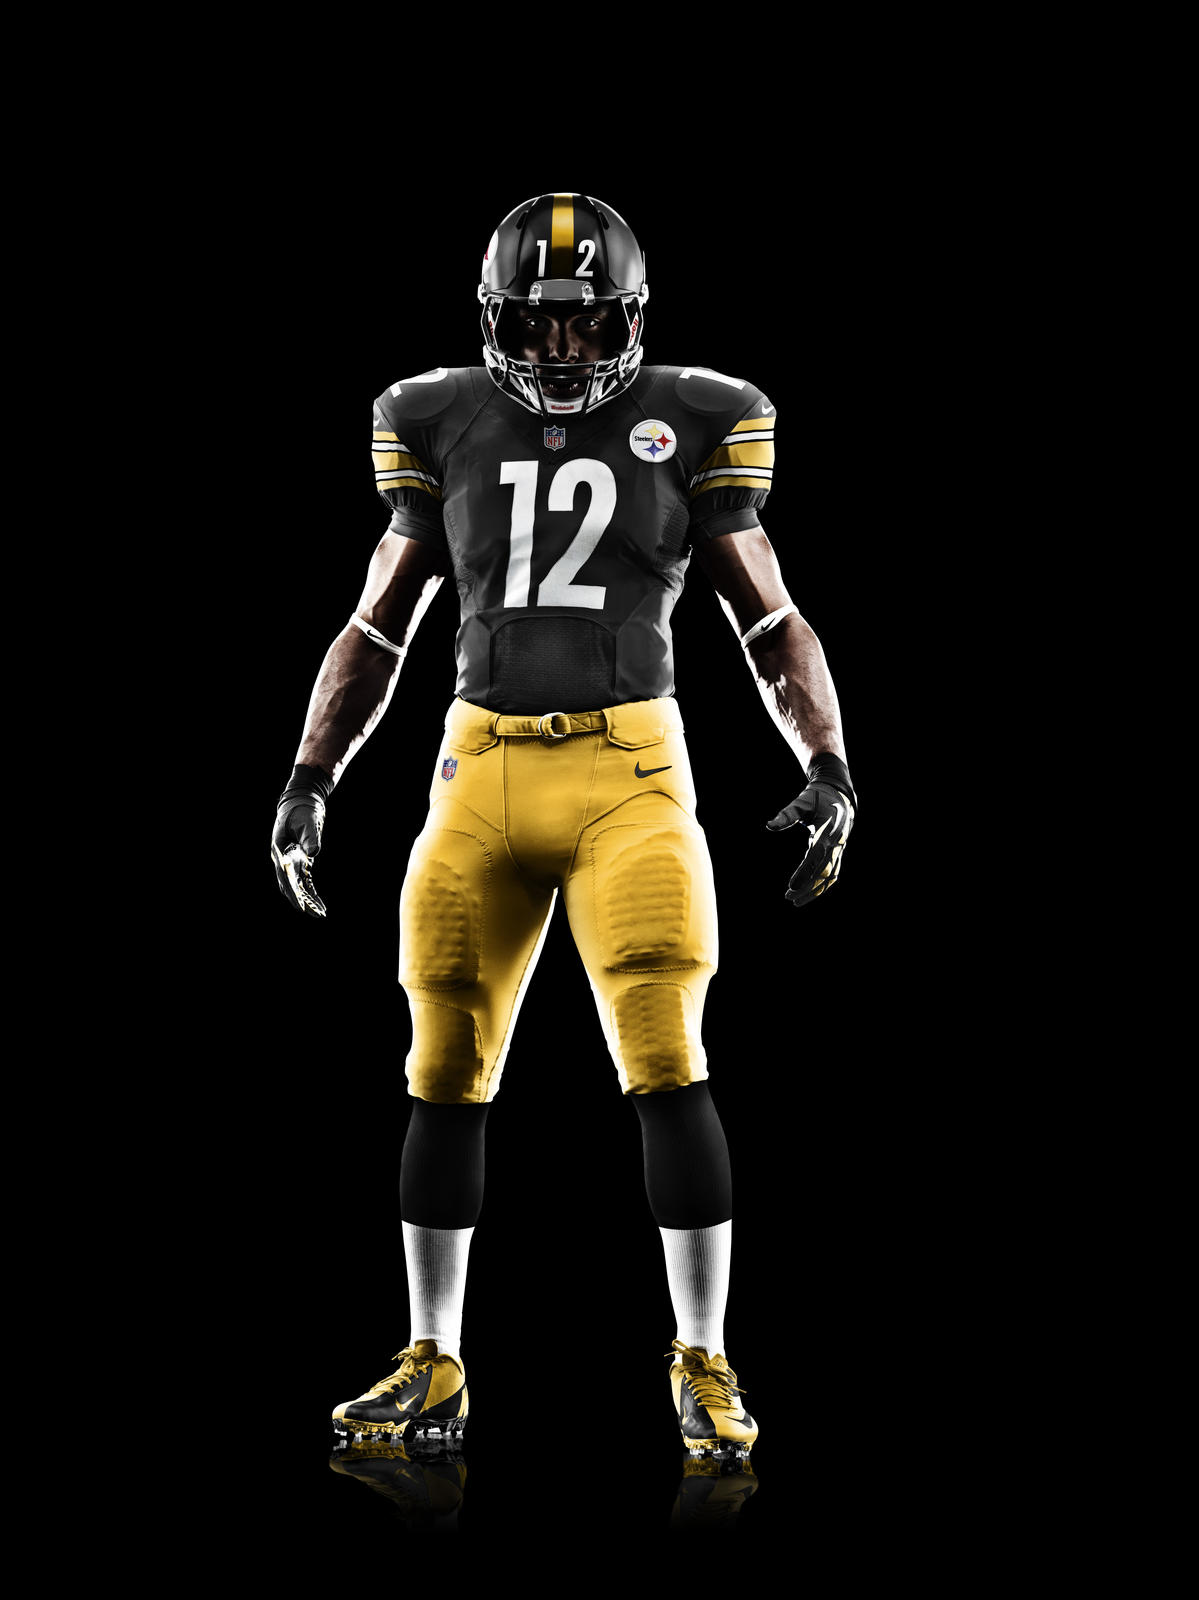 Nike News - Pittsburgh Steelers 2012 Nike Football Uniform